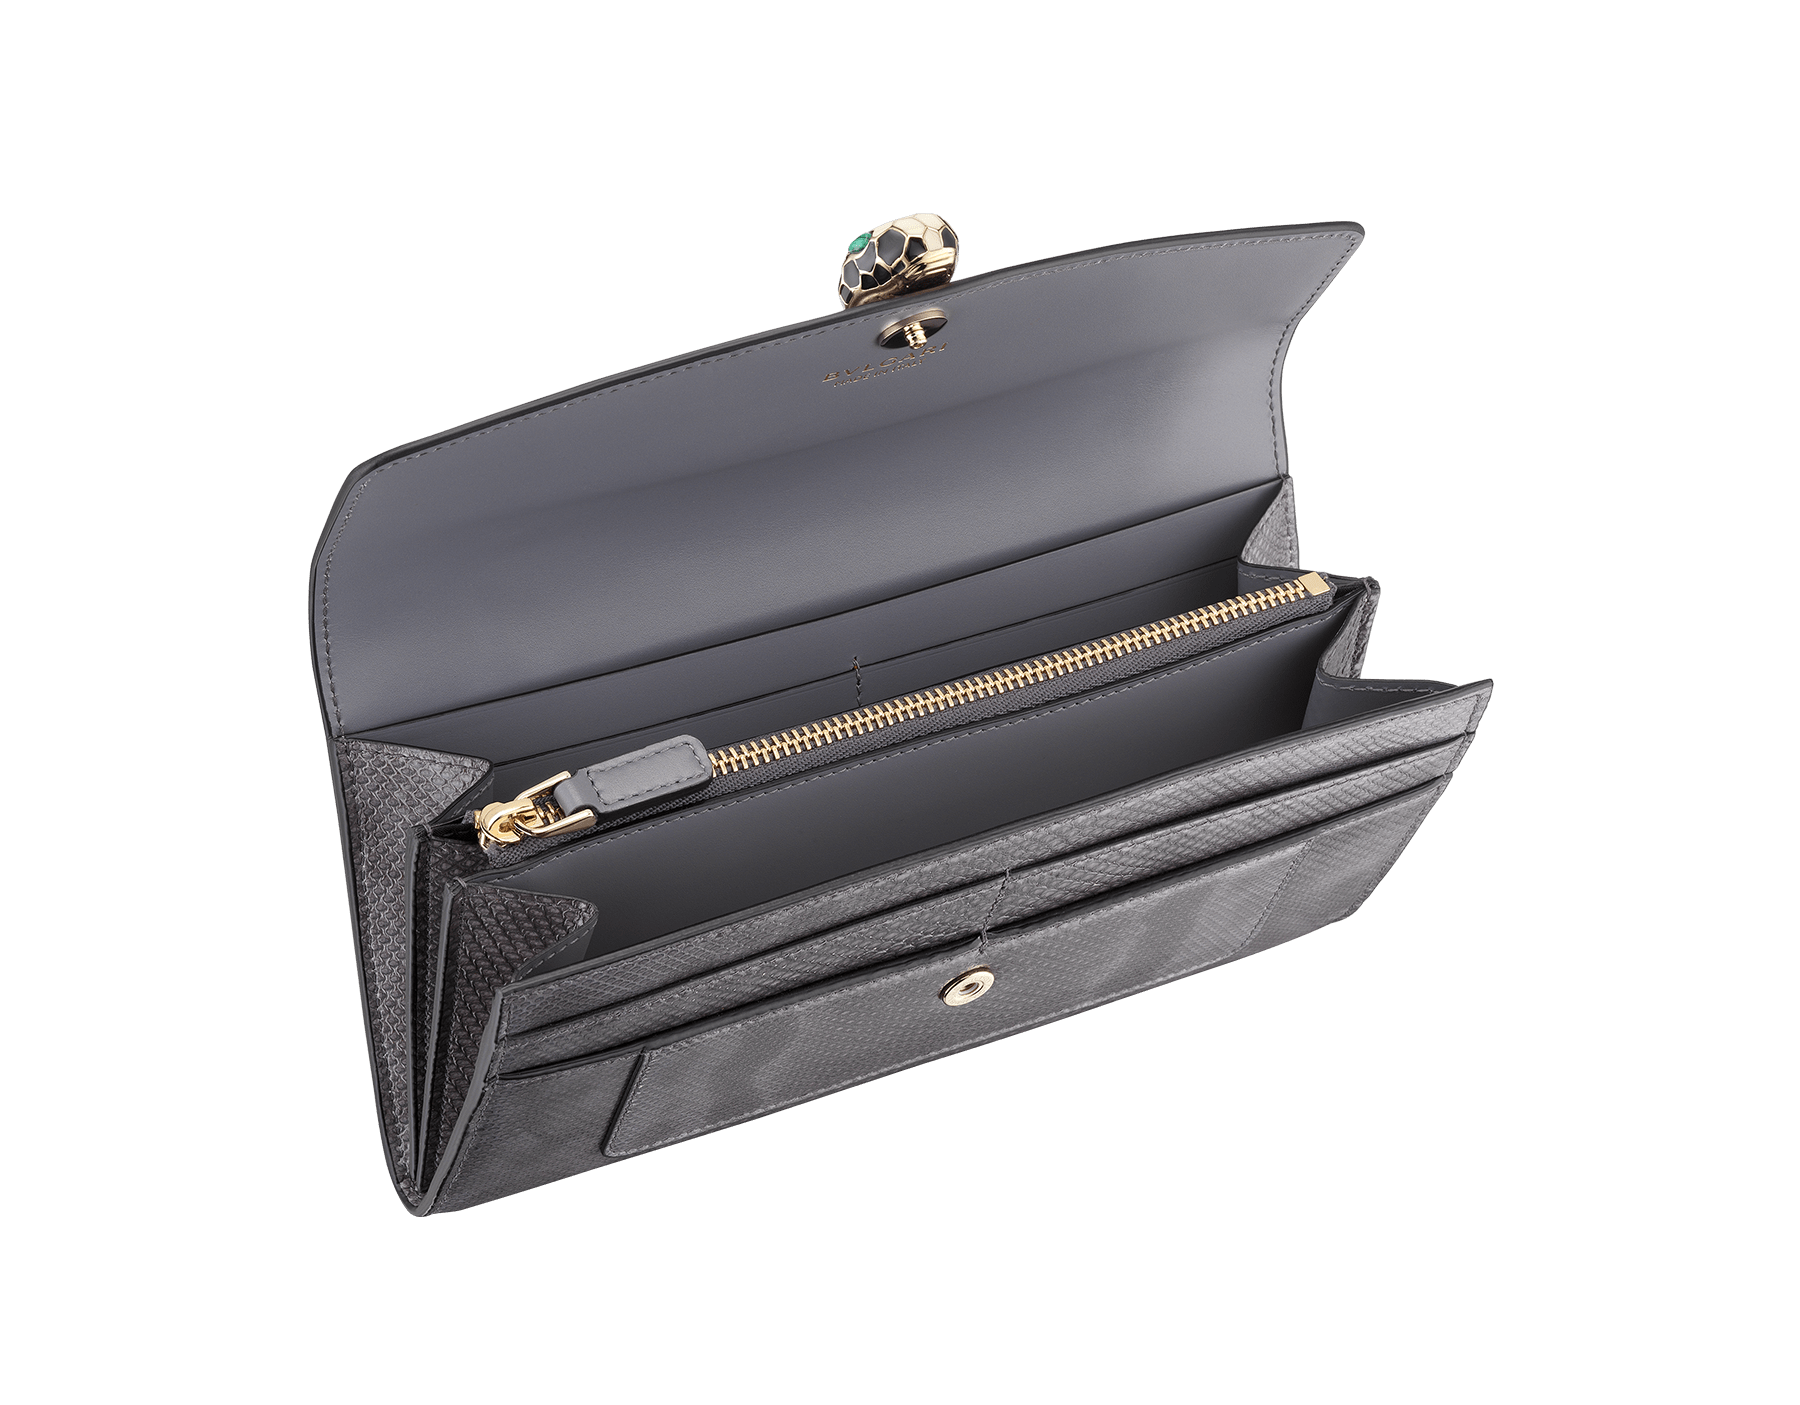 Serpenti Forever wallet pochette in rhapsody opal shiny karung skin and calf leather. Iconic snakehead stud closure in black and white enamel, with green malachite eyes 287255 image 2